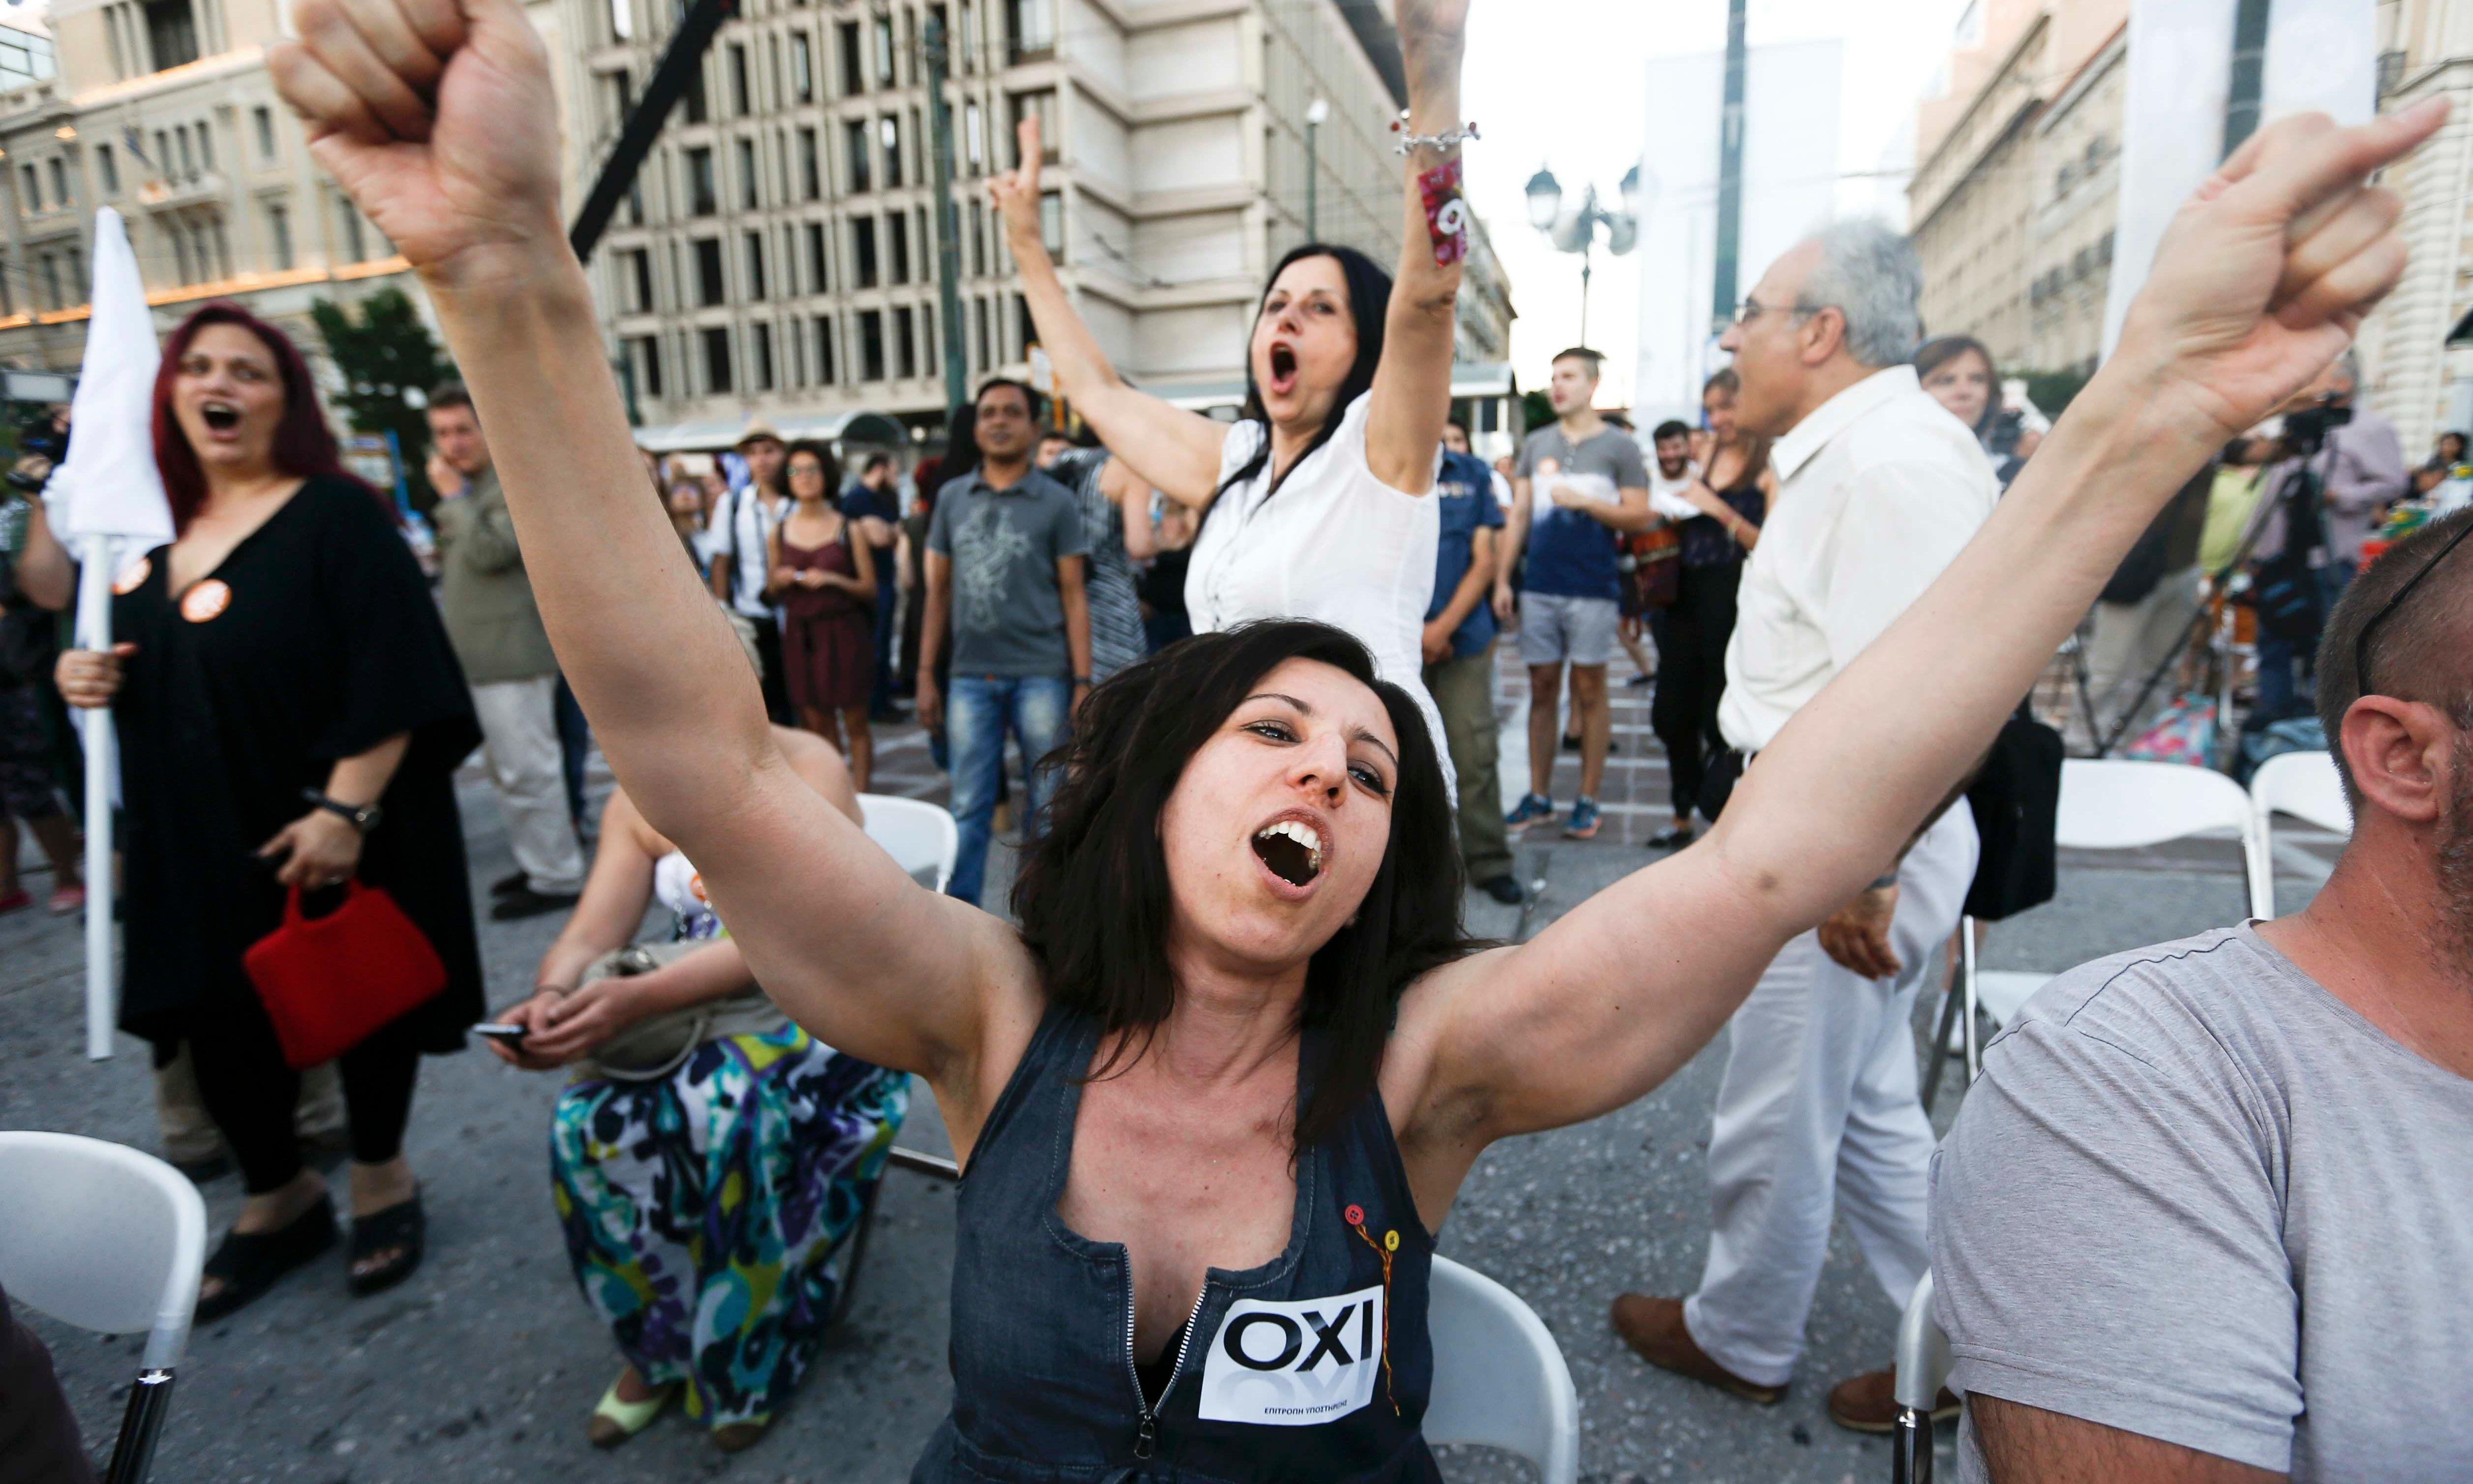 Greece heads towards historic no vote against austerity measures